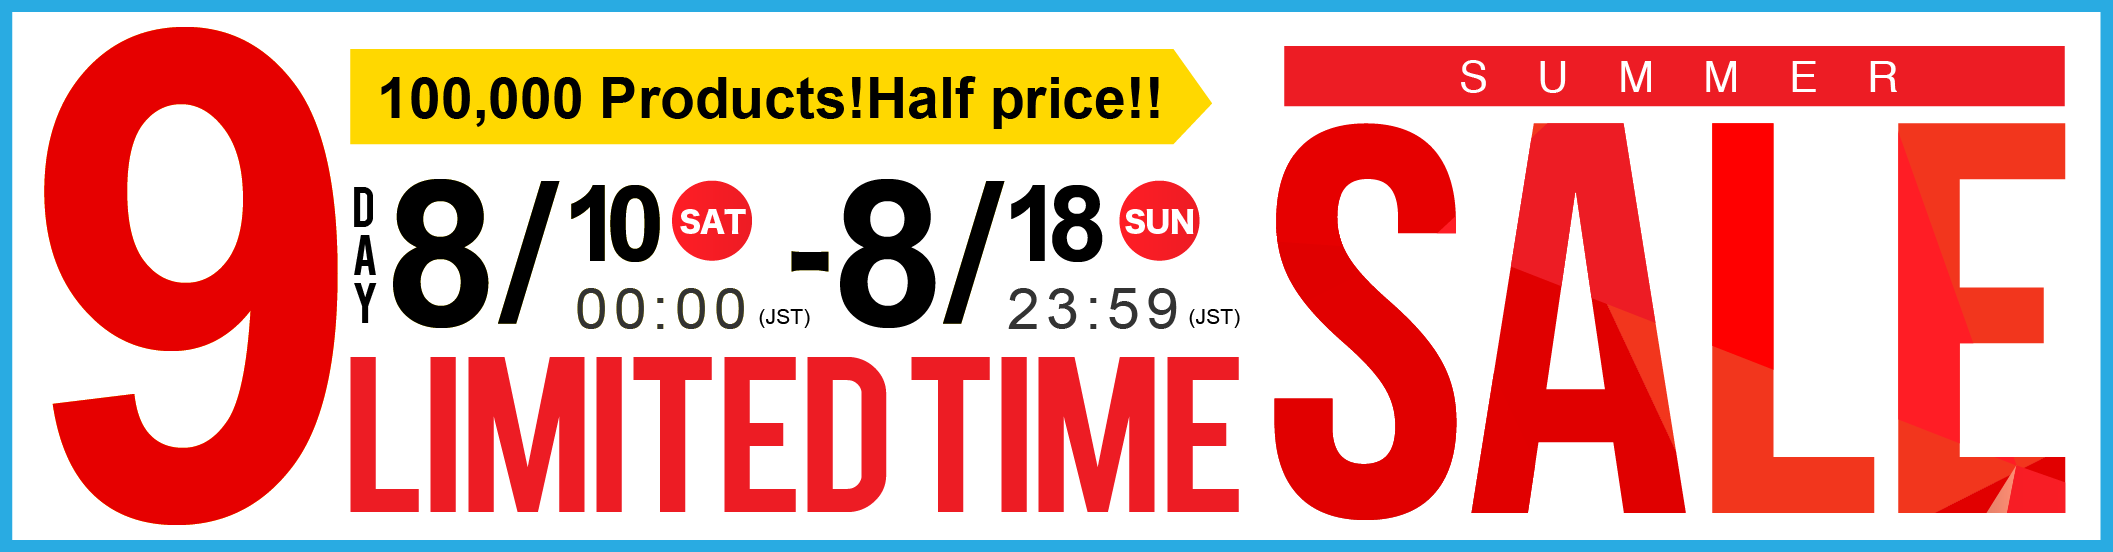 Limited Time Big Sale!